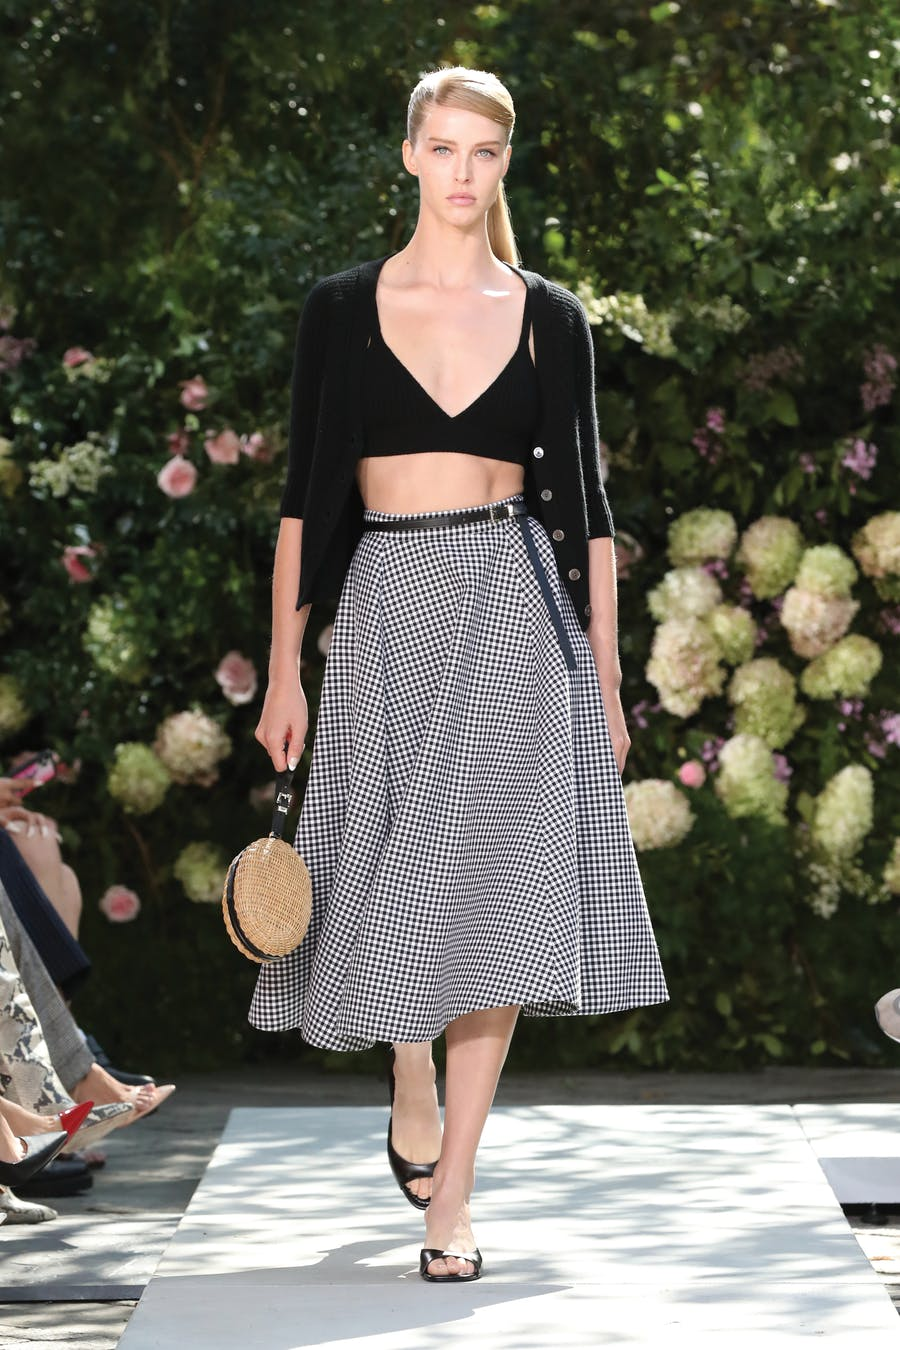 ss22-look-18